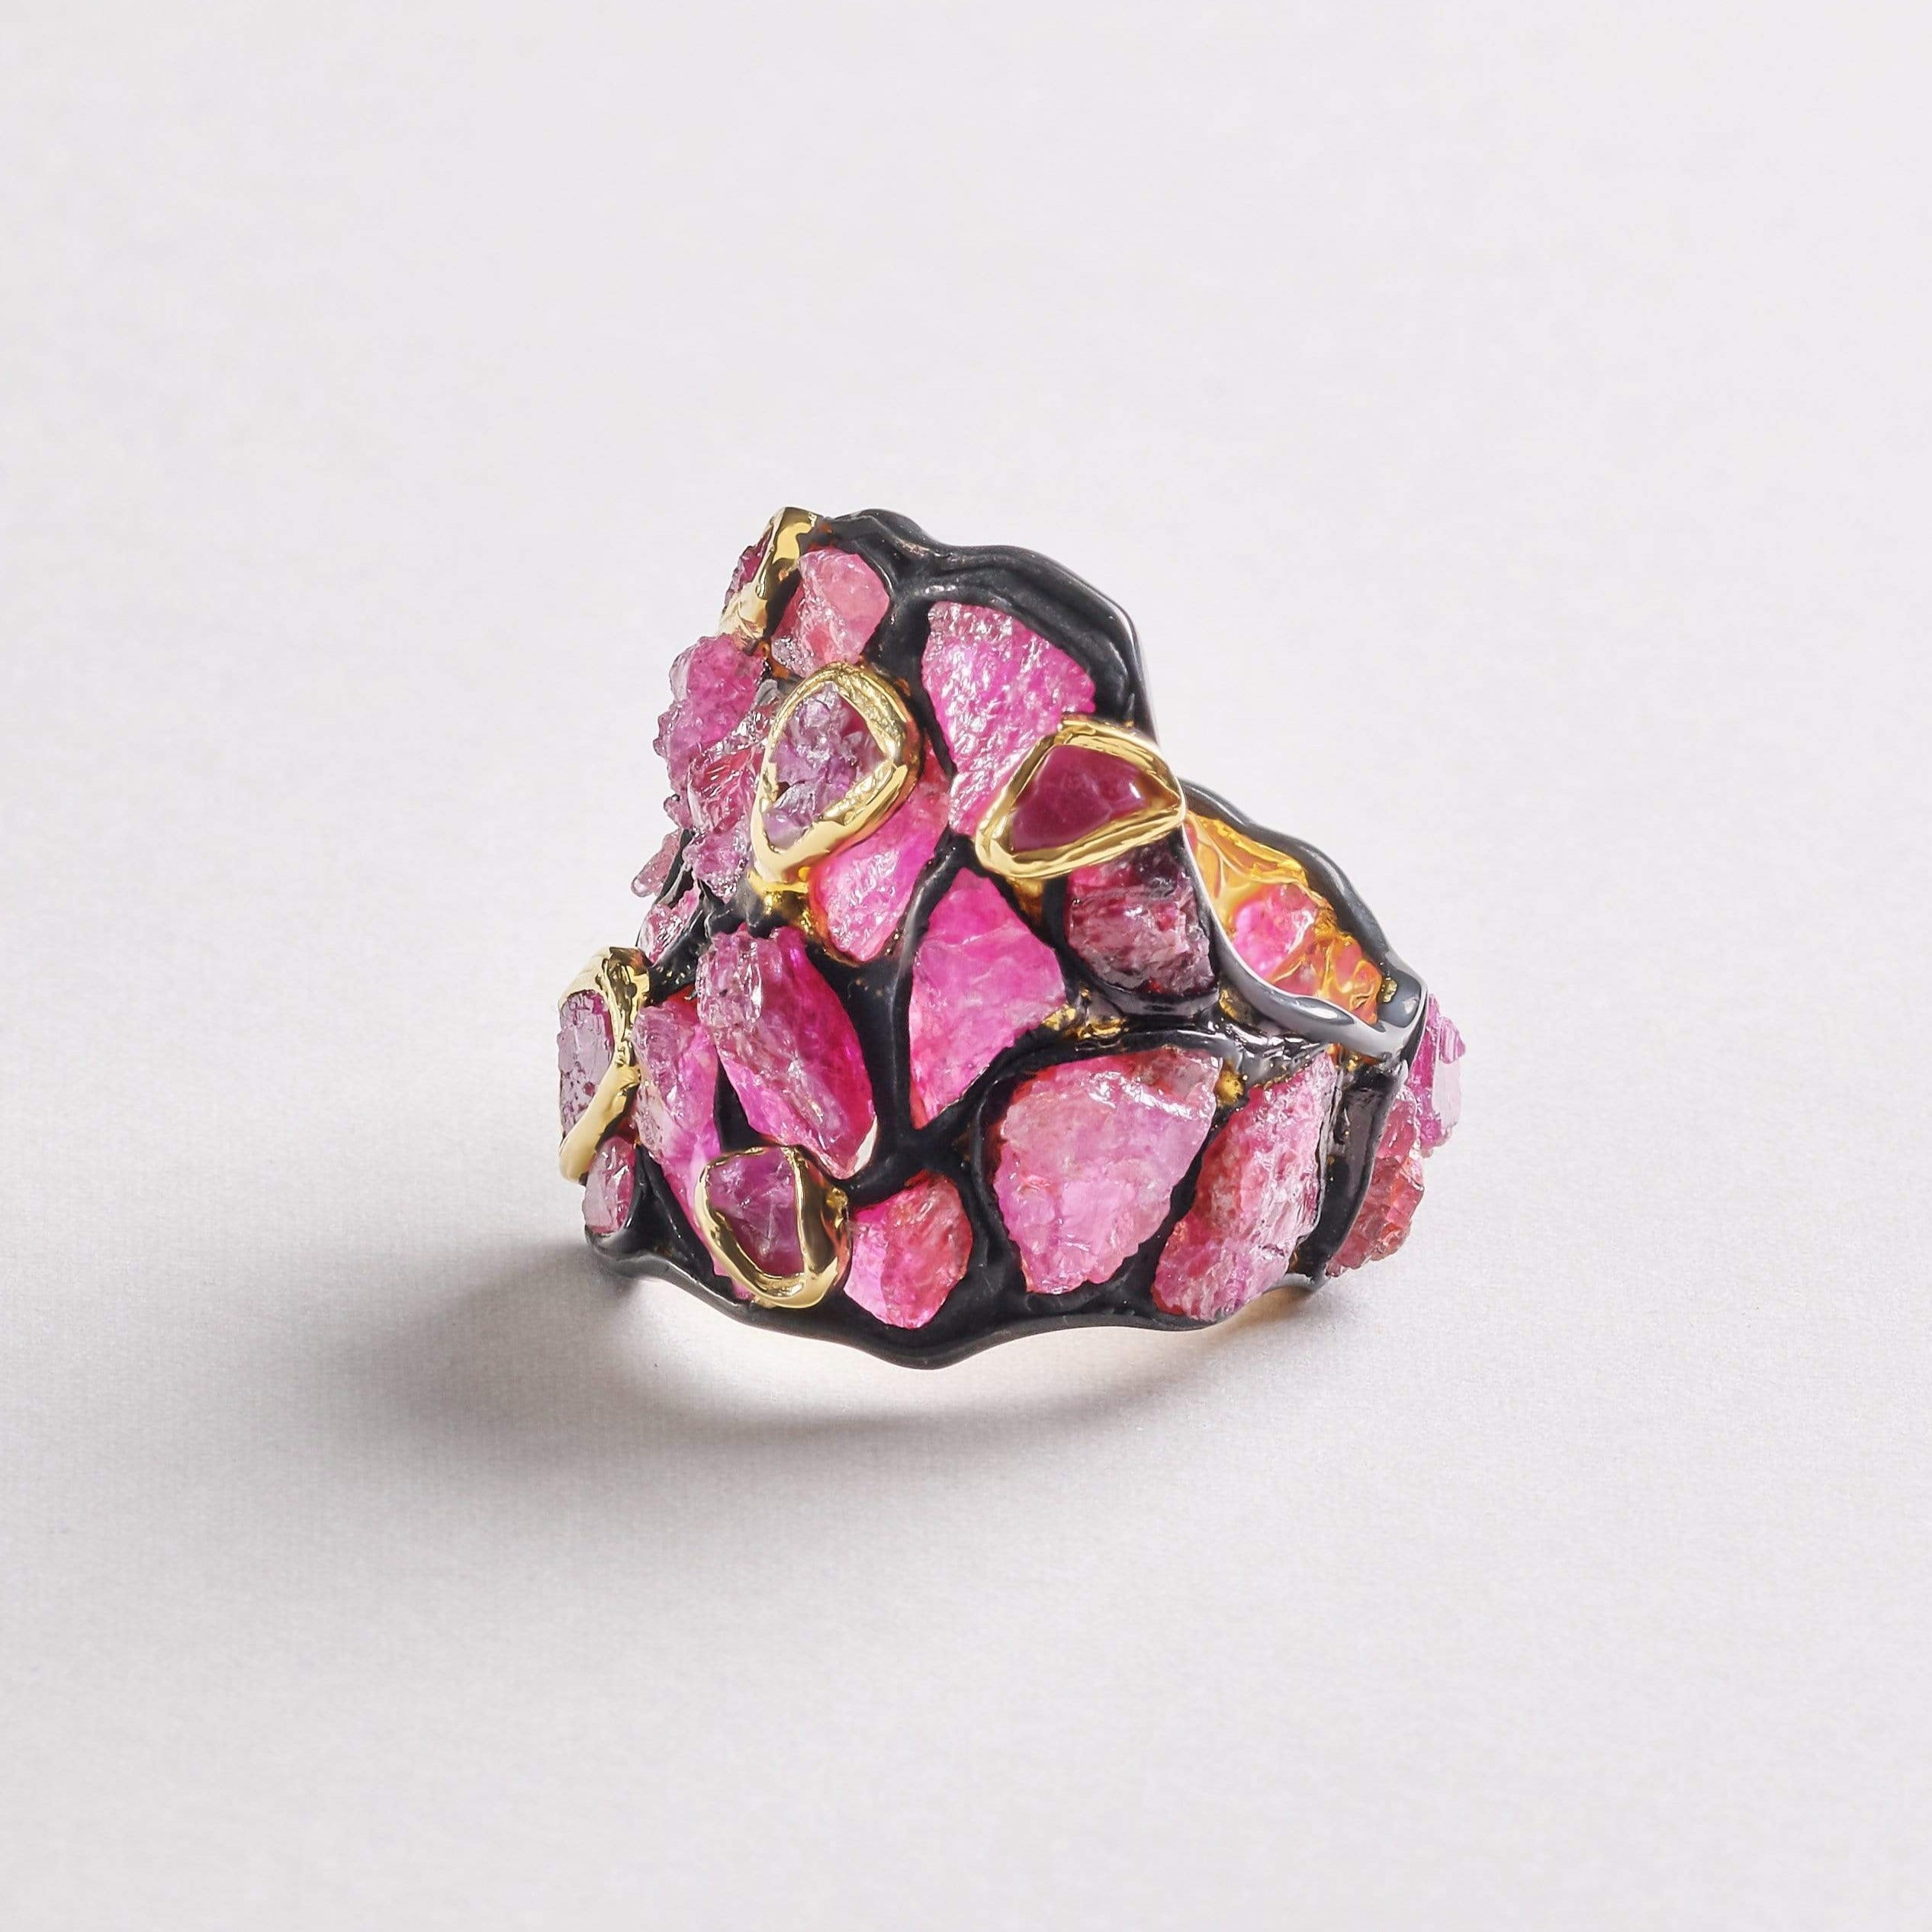 Medea Ruby Ring, Anthracite, black, Gold, Handmade, Ruby, spo-disabled, StoneColor:PinkRuby, Style:Everyday, Type:StainedGlass Ring